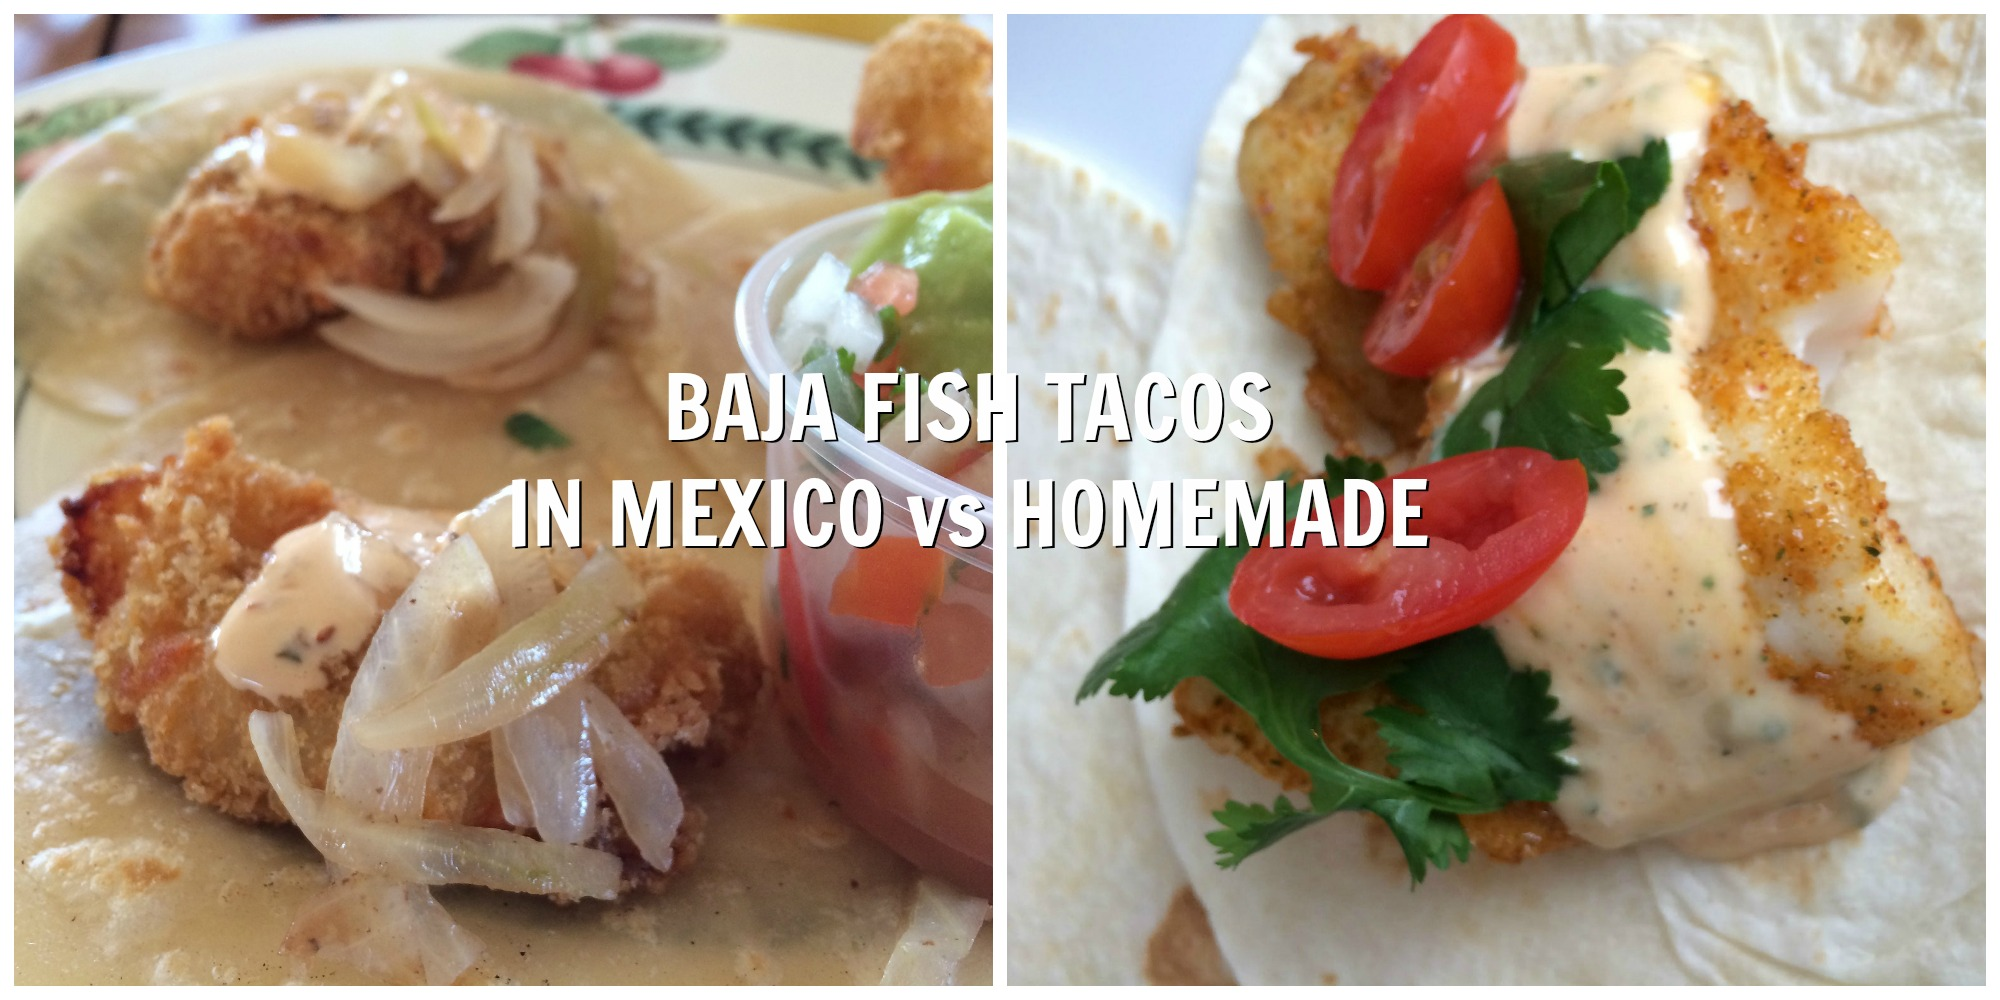 Baja Fish Tacos in Mexico vs Homemade